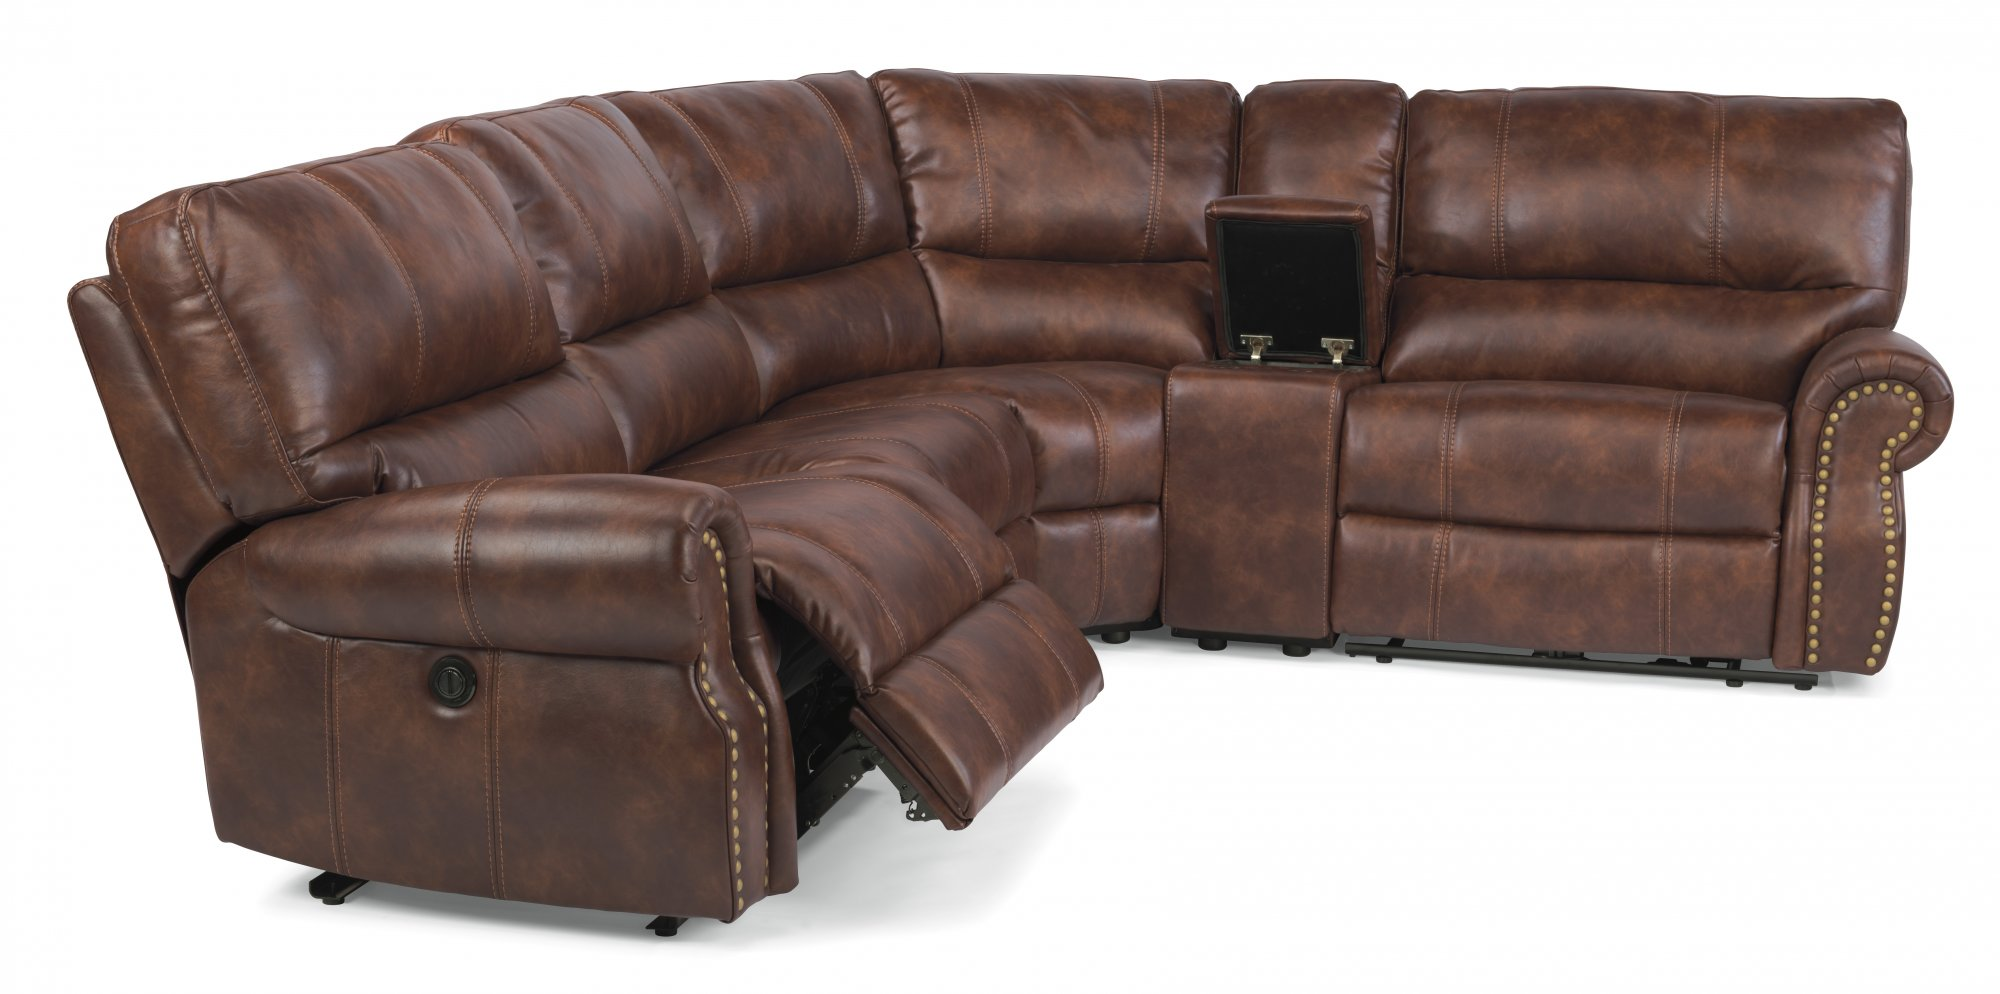 Fabric Power Reclining Sectional  sc 1 st  Flexsteel : power reclining sectional sofa - Sectionals, Sofas & Couches